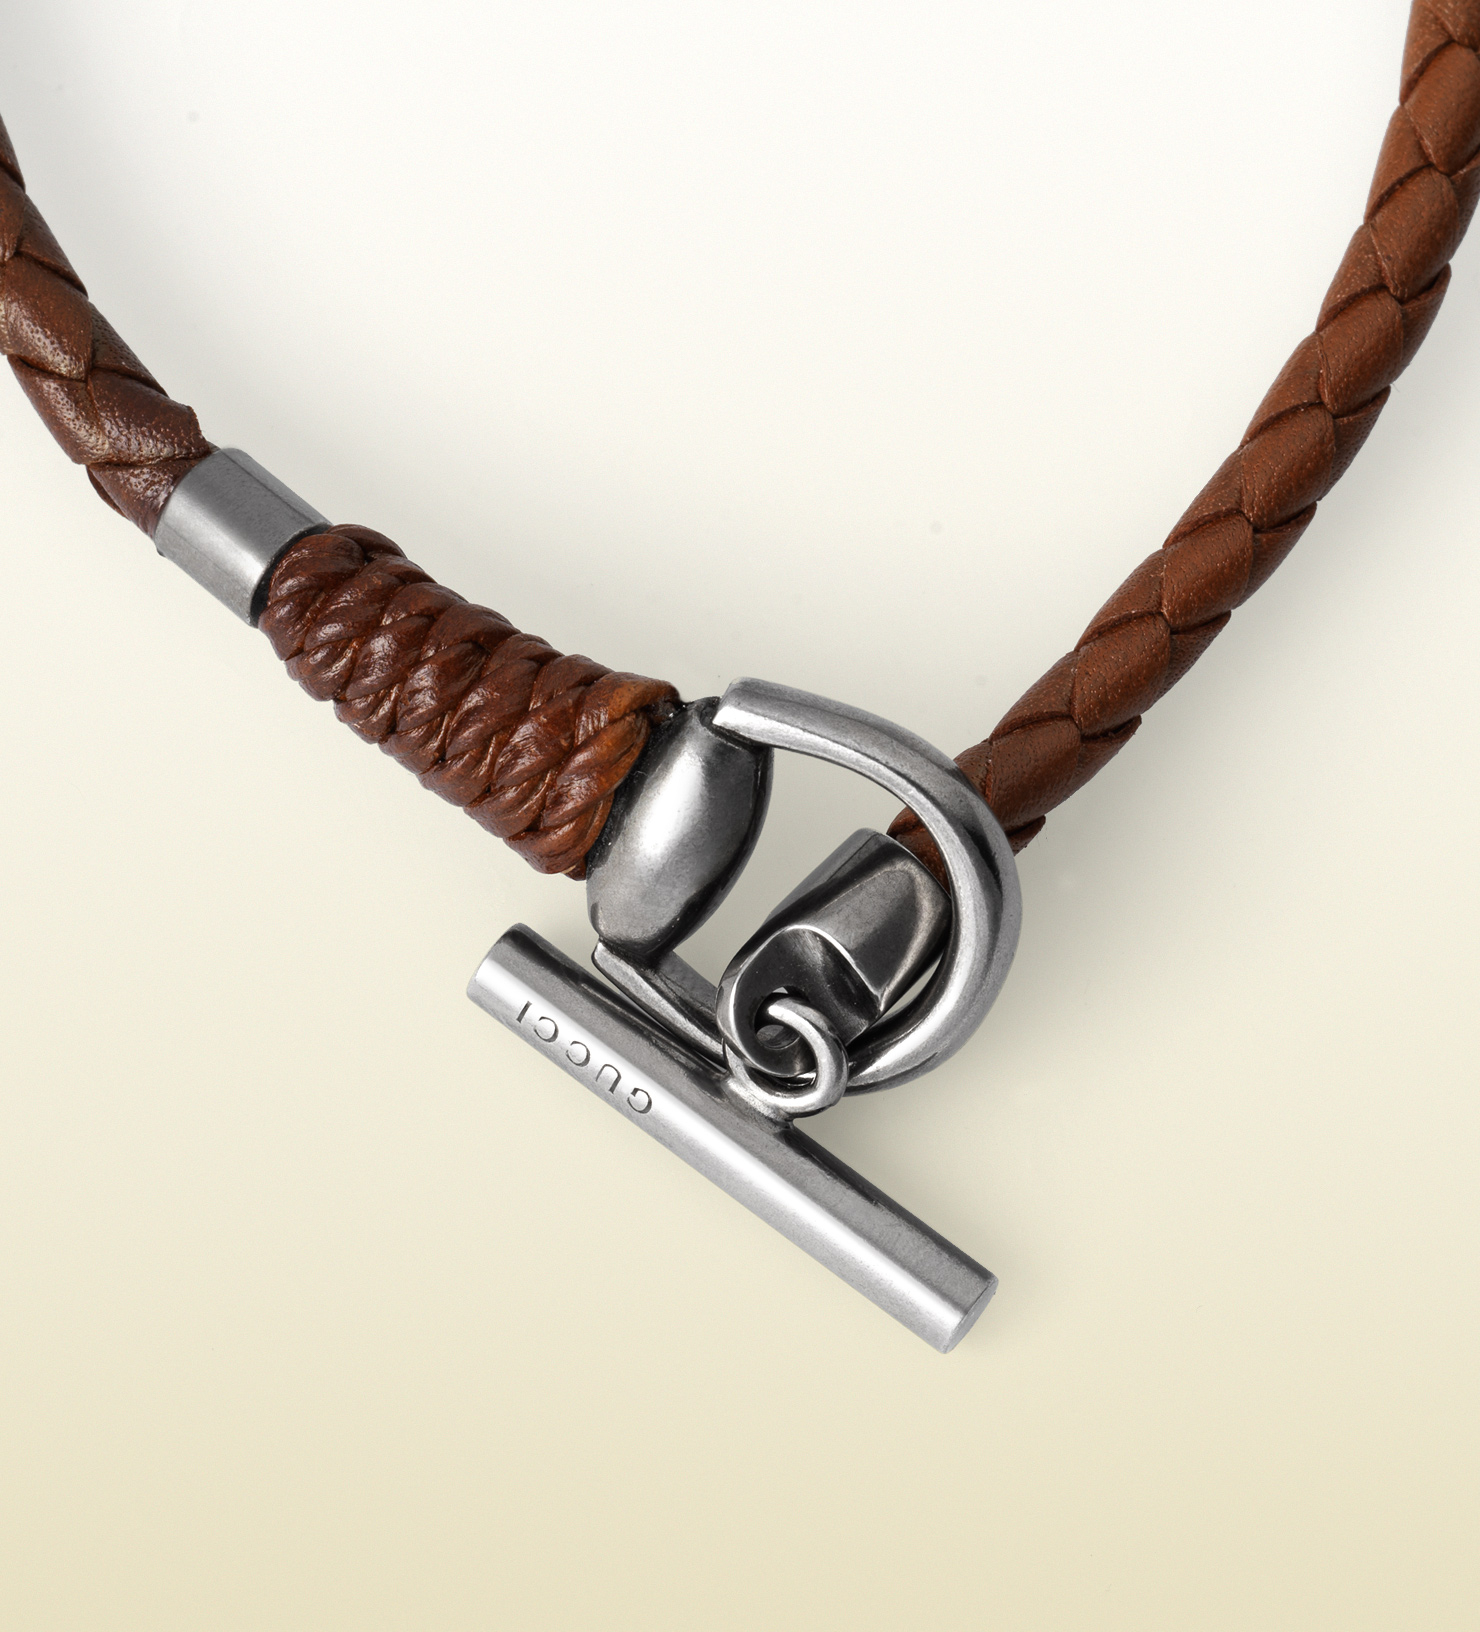 Gucci Leather Bracelet With Horsebit Toggle Closure In